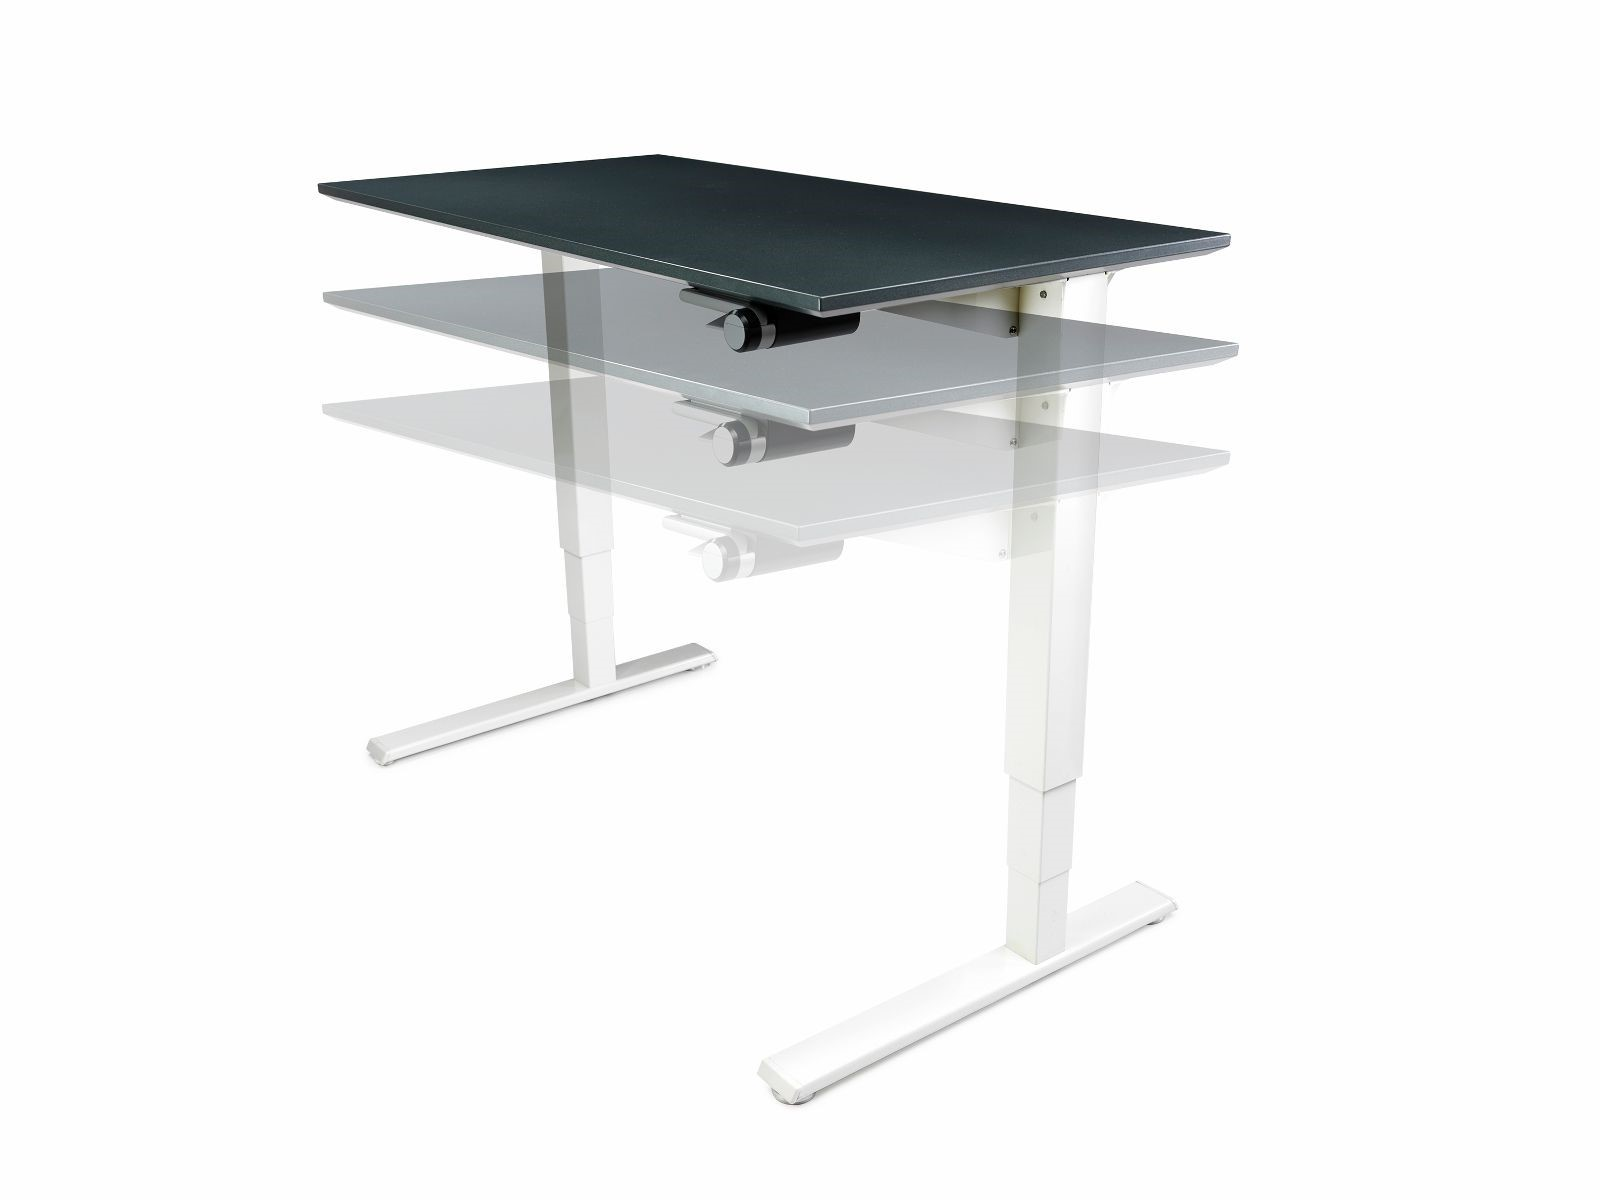 humanscale float large height adjustable desk 1500 to 1800 mm hsfll